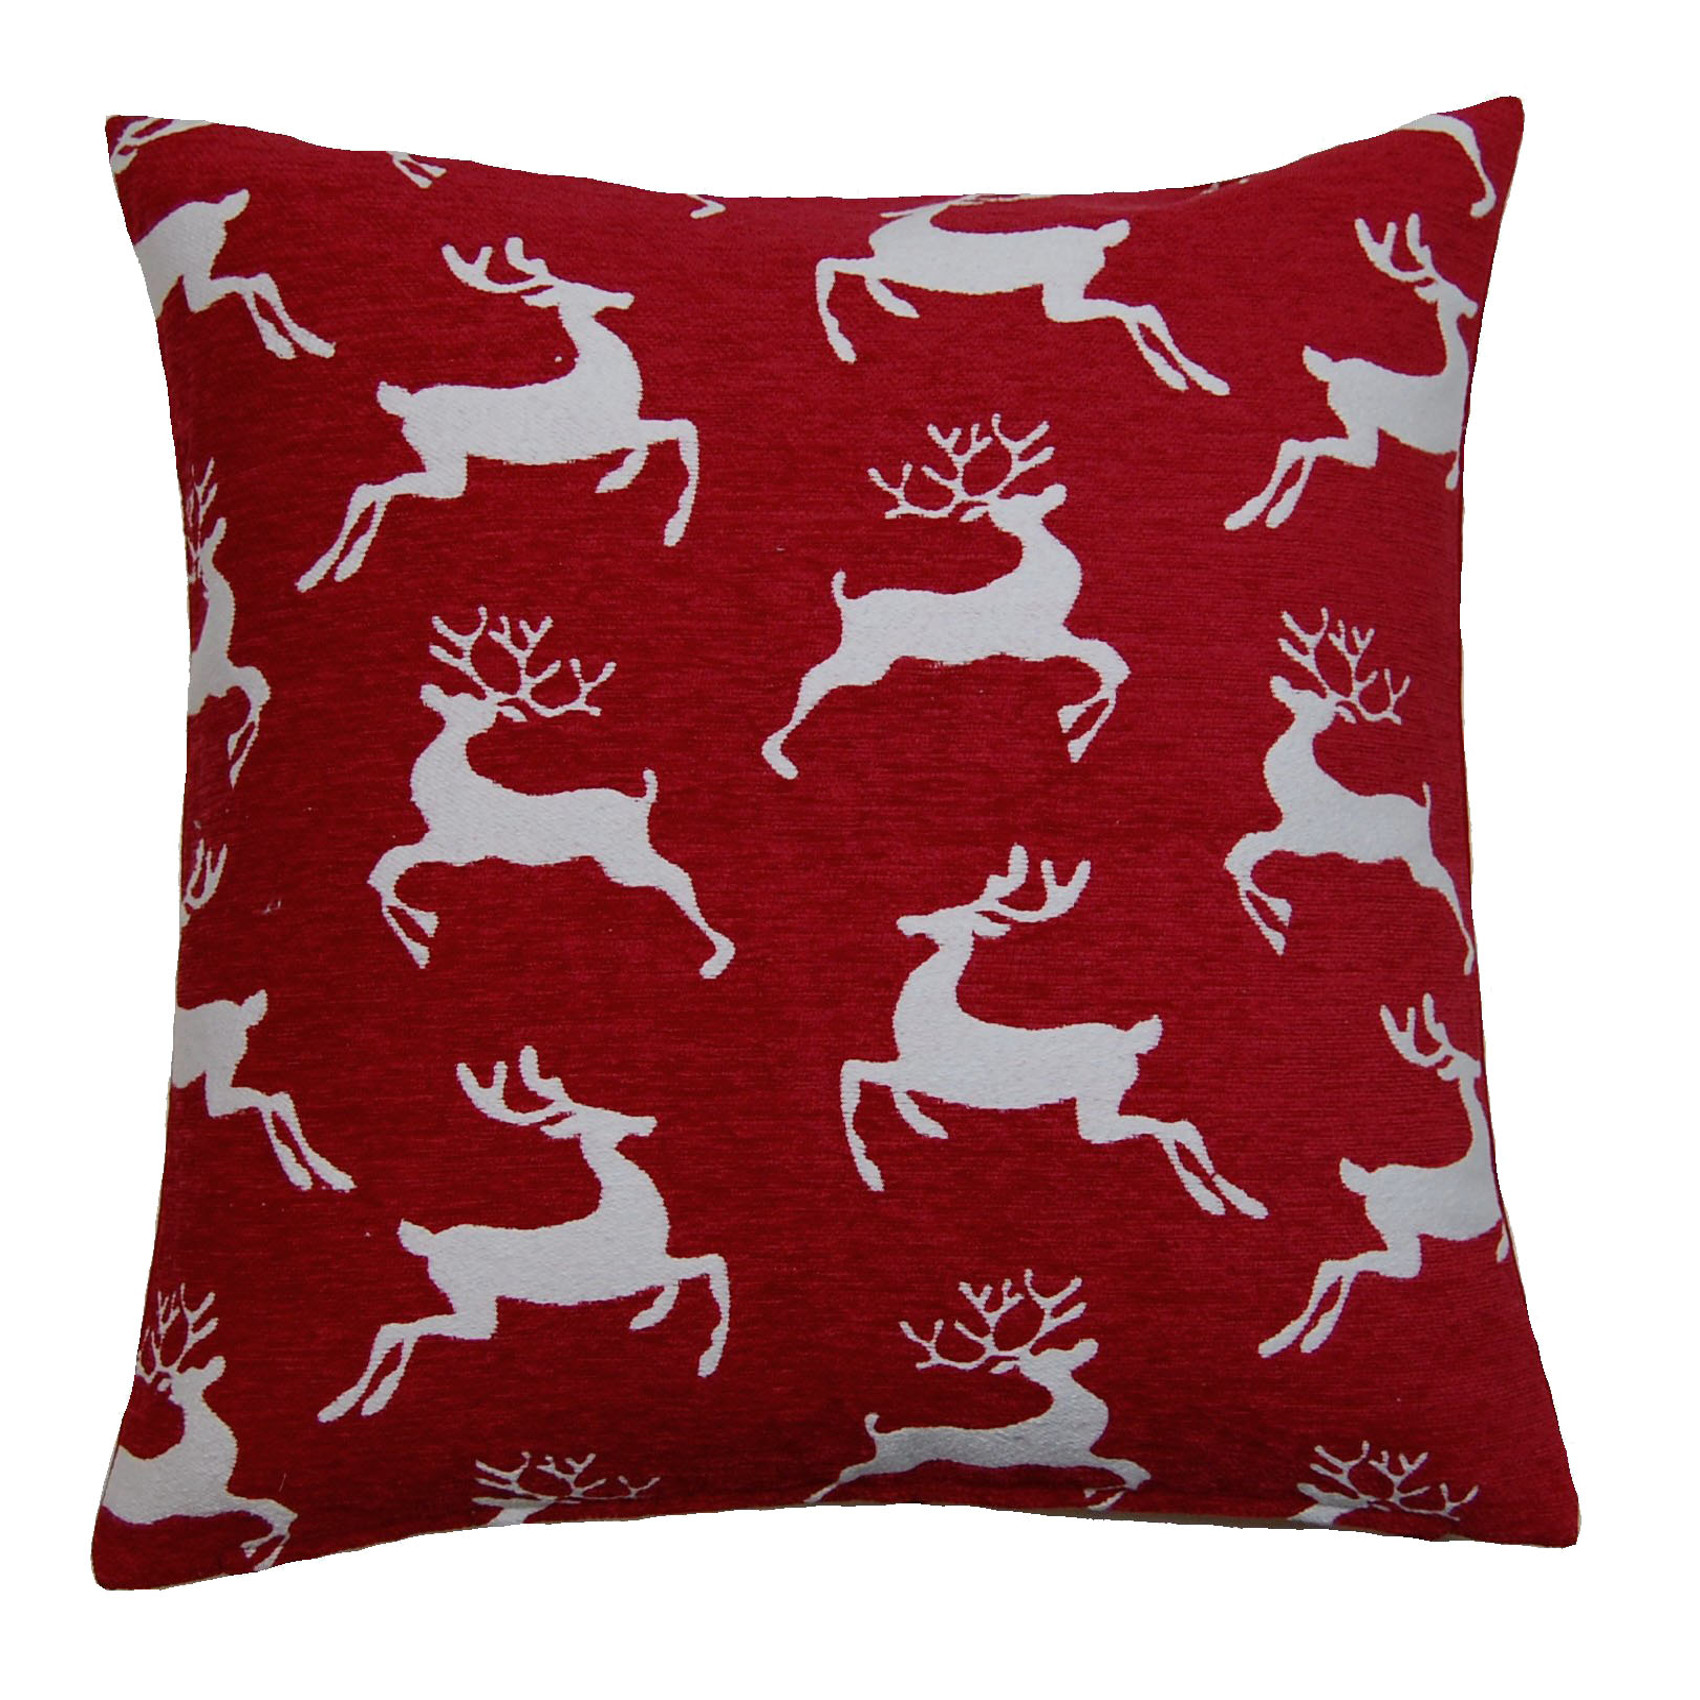 Find great deals on eBay for christmas cushion cover. Shop with confidence.